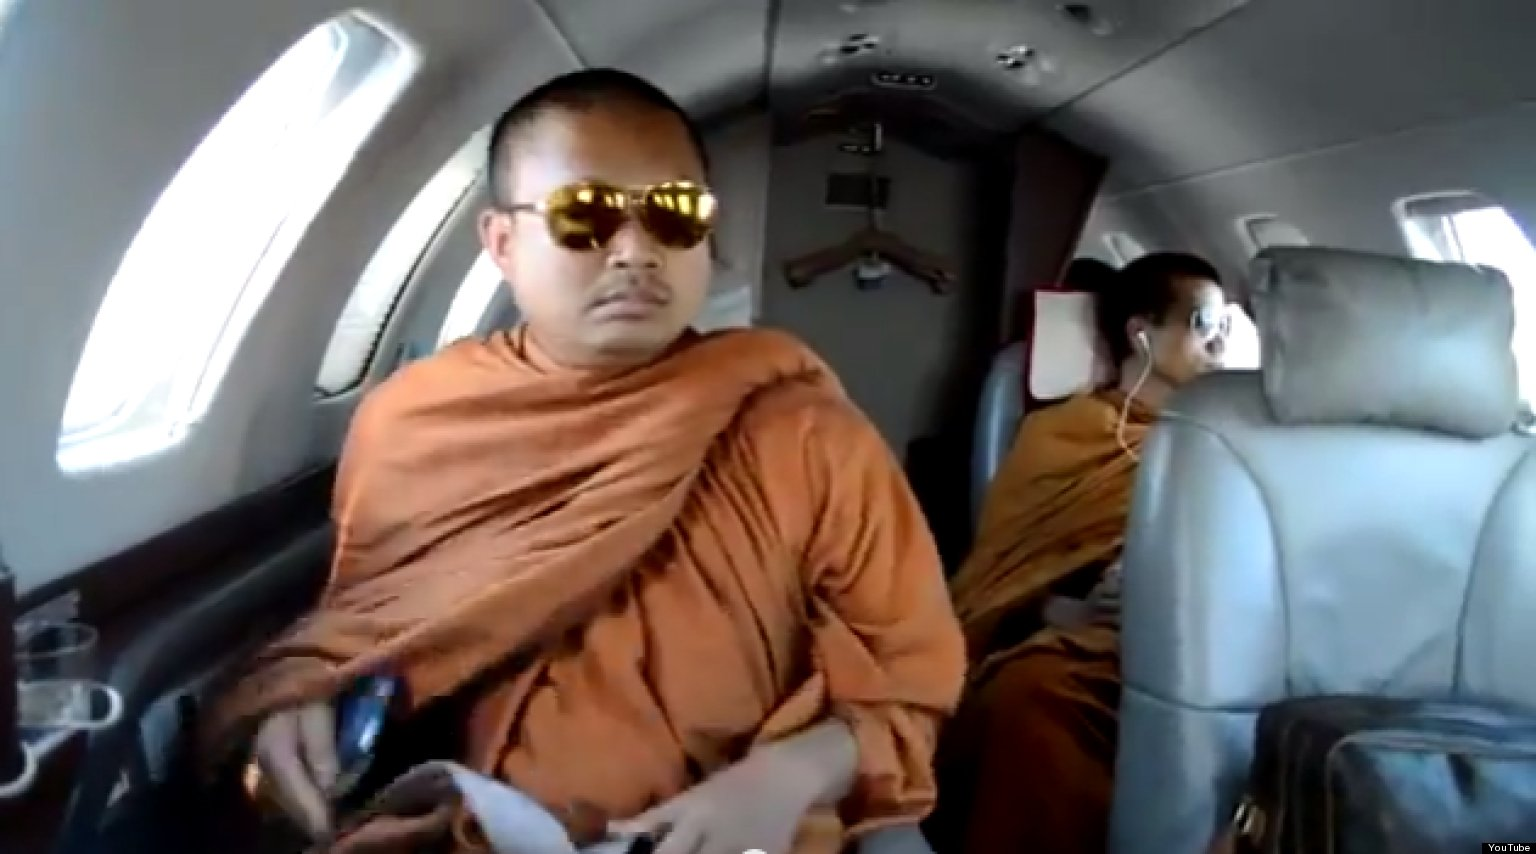 Thai monk caught in whirlpool of scandals